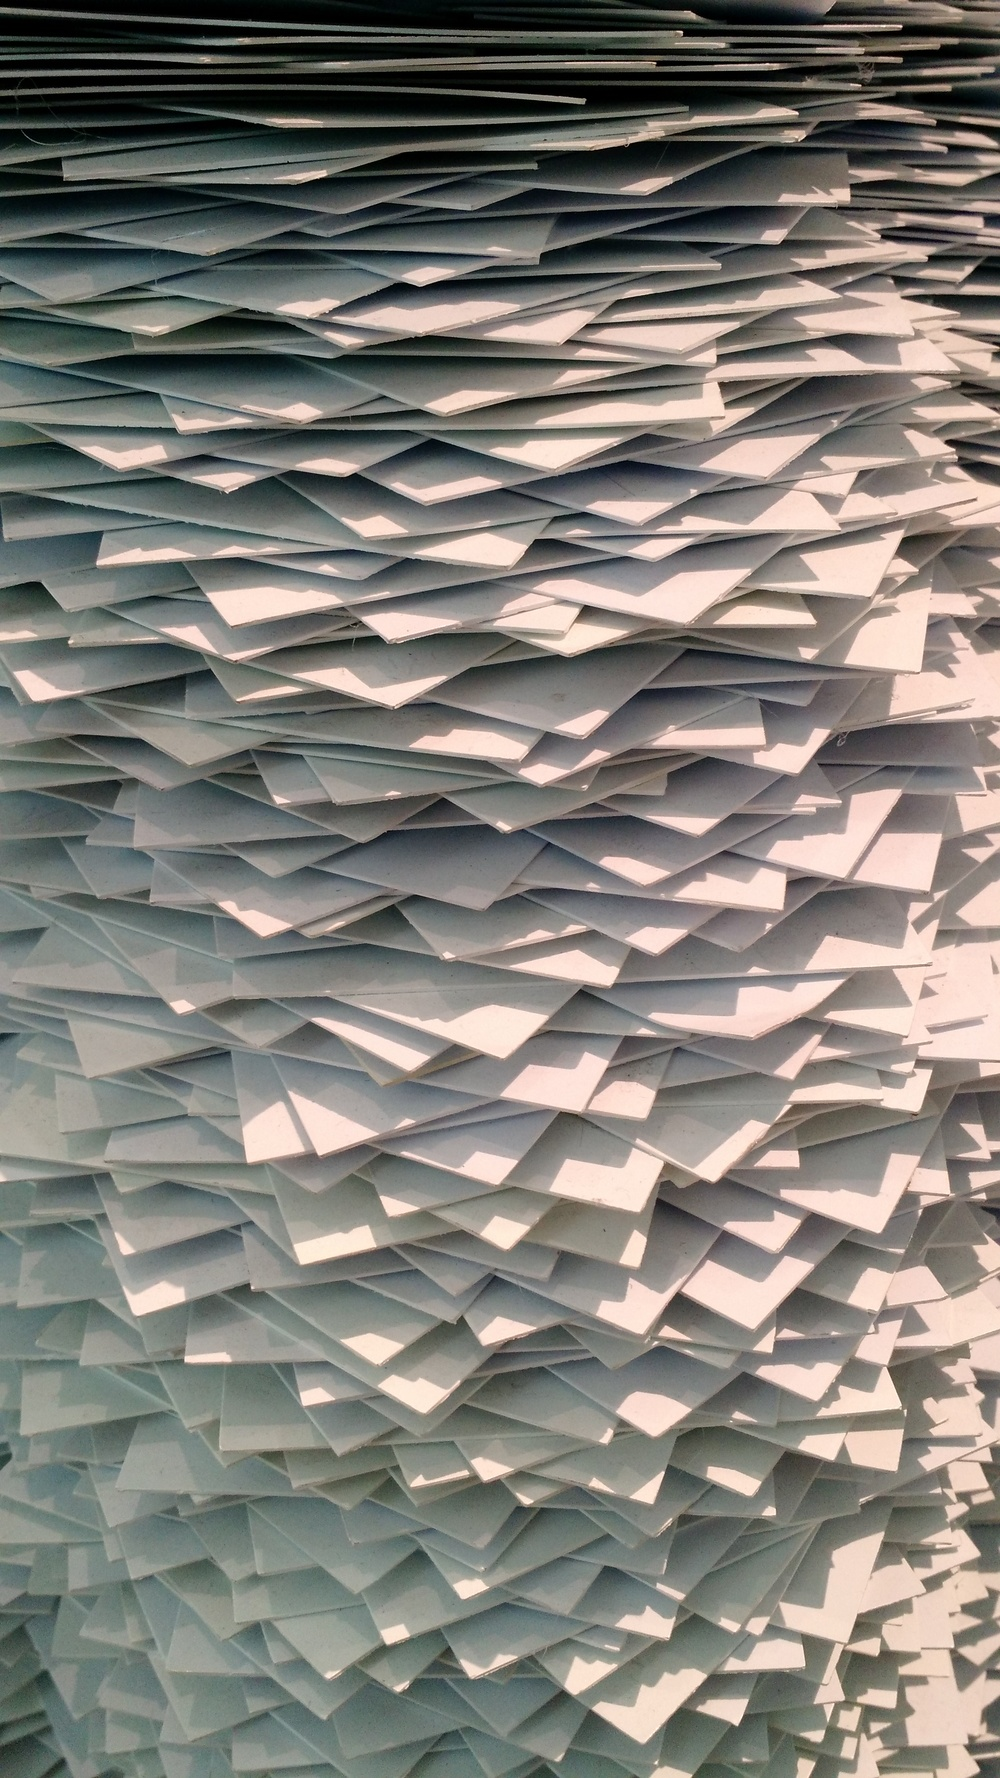 They're made entirely of index cards.